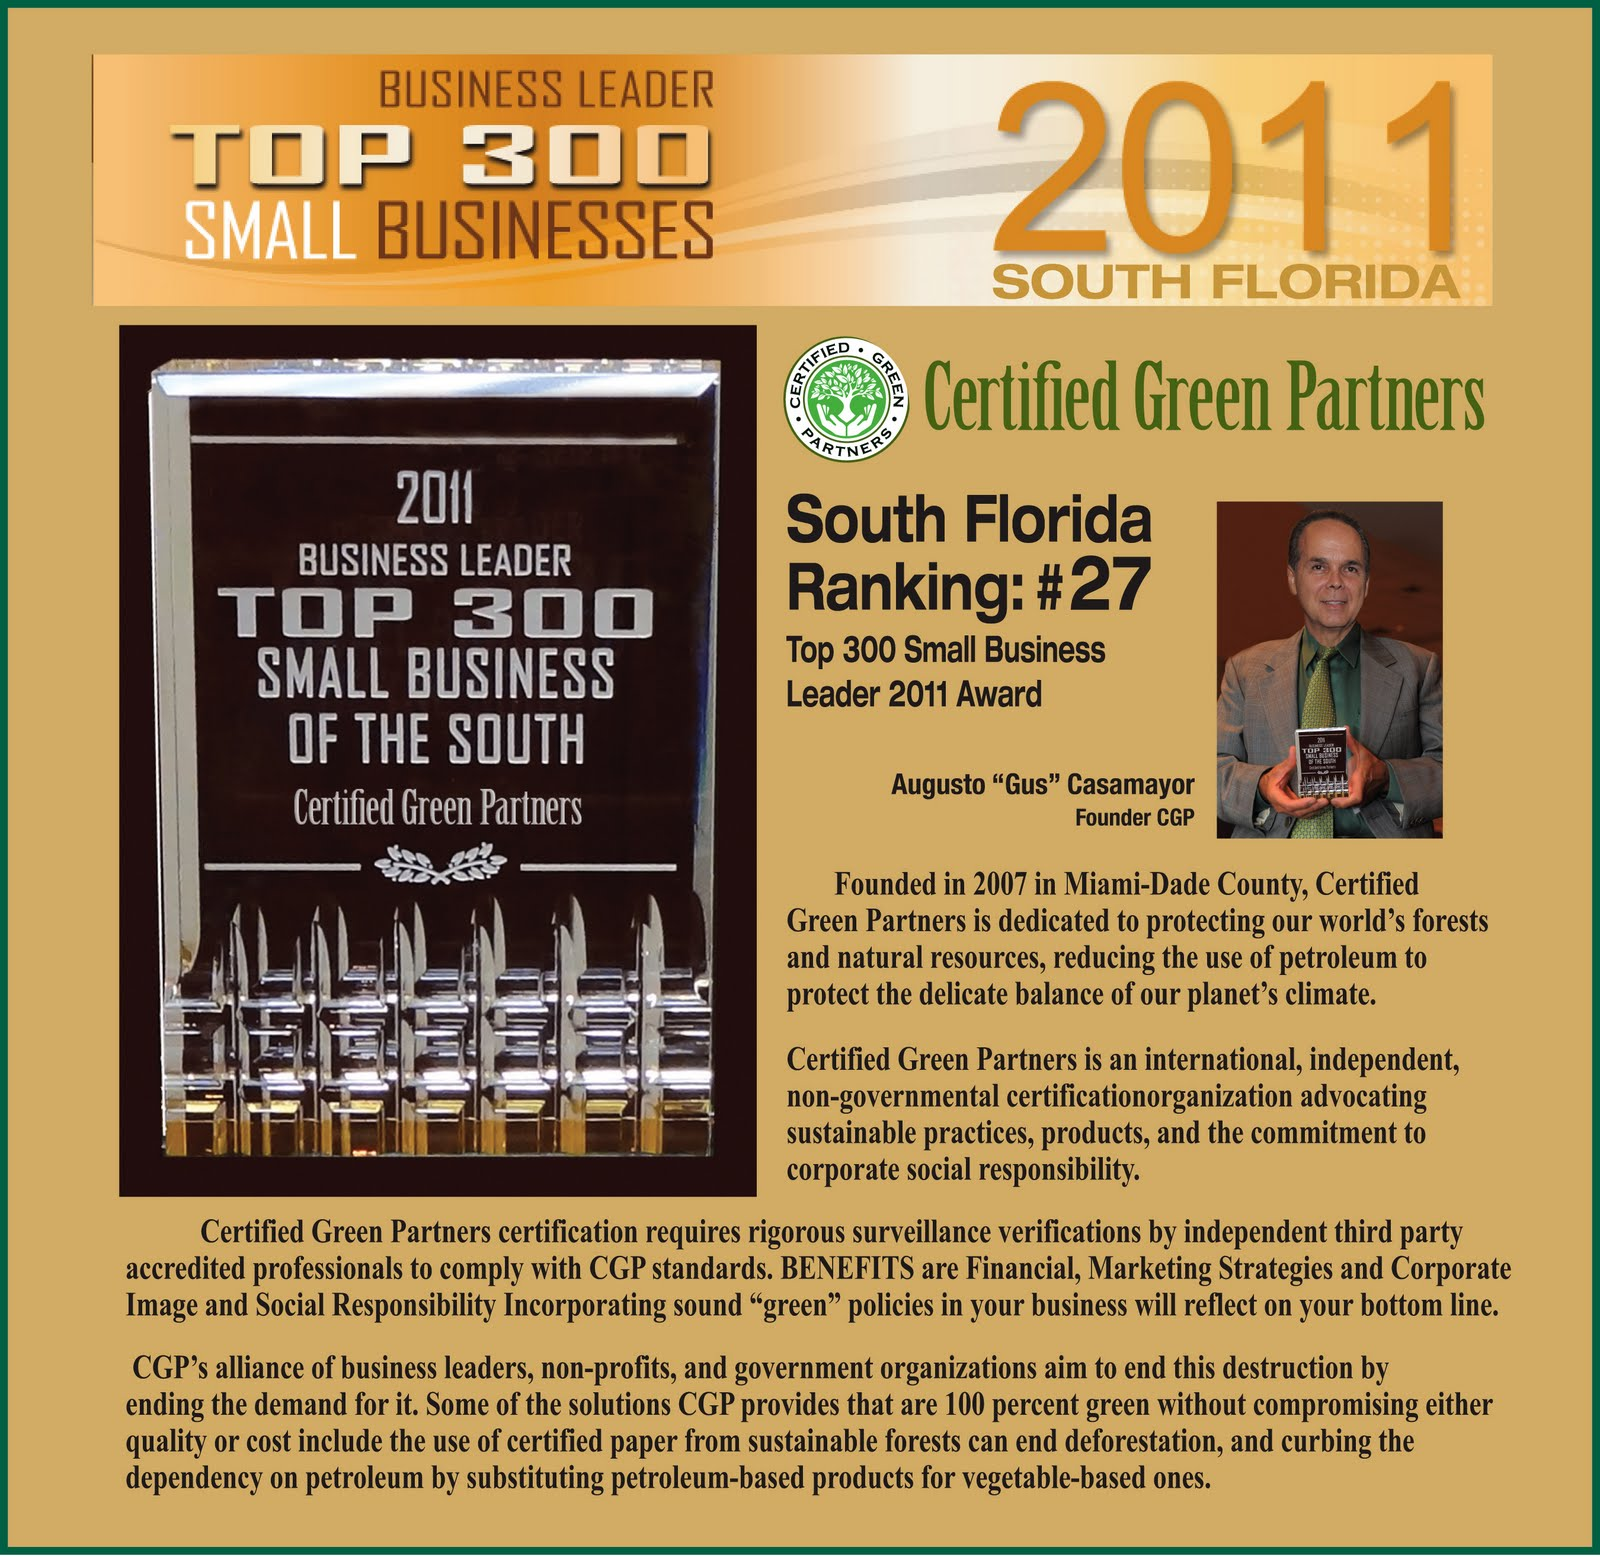 Certified green partners certified green partners ranked 27 south floridas top 300 small business leaders for 2011 1betcityfo Image collections